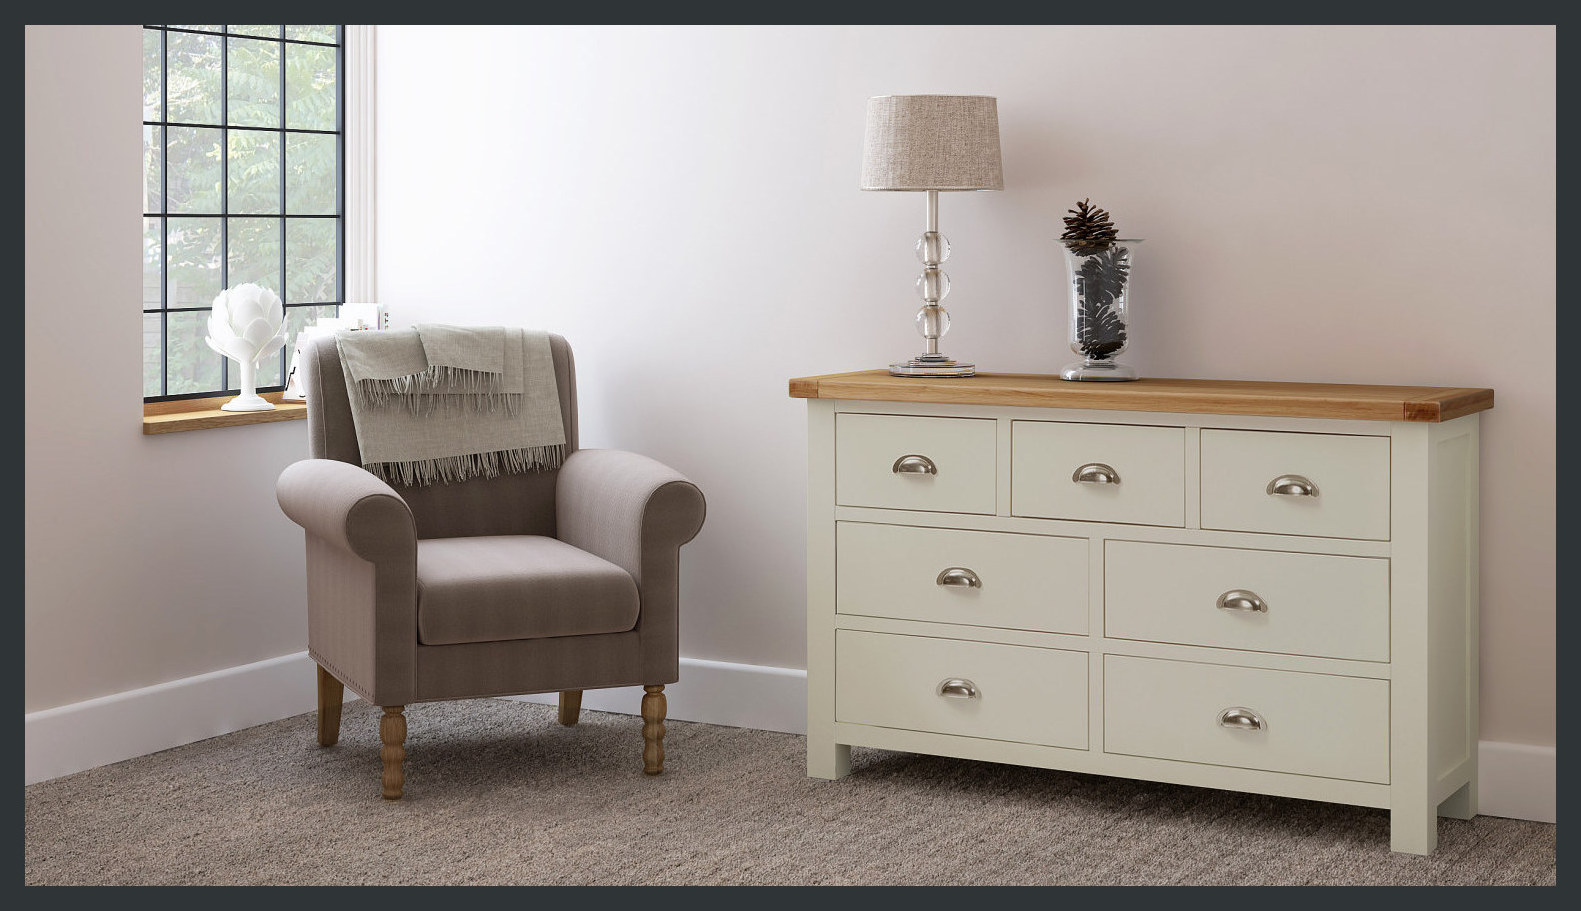 Rustique Home Florence Painted and Natural 100% Solid Oak Chest of Drawers. Metal handles. Twin color, main body is painted grey and top is natural oak color.